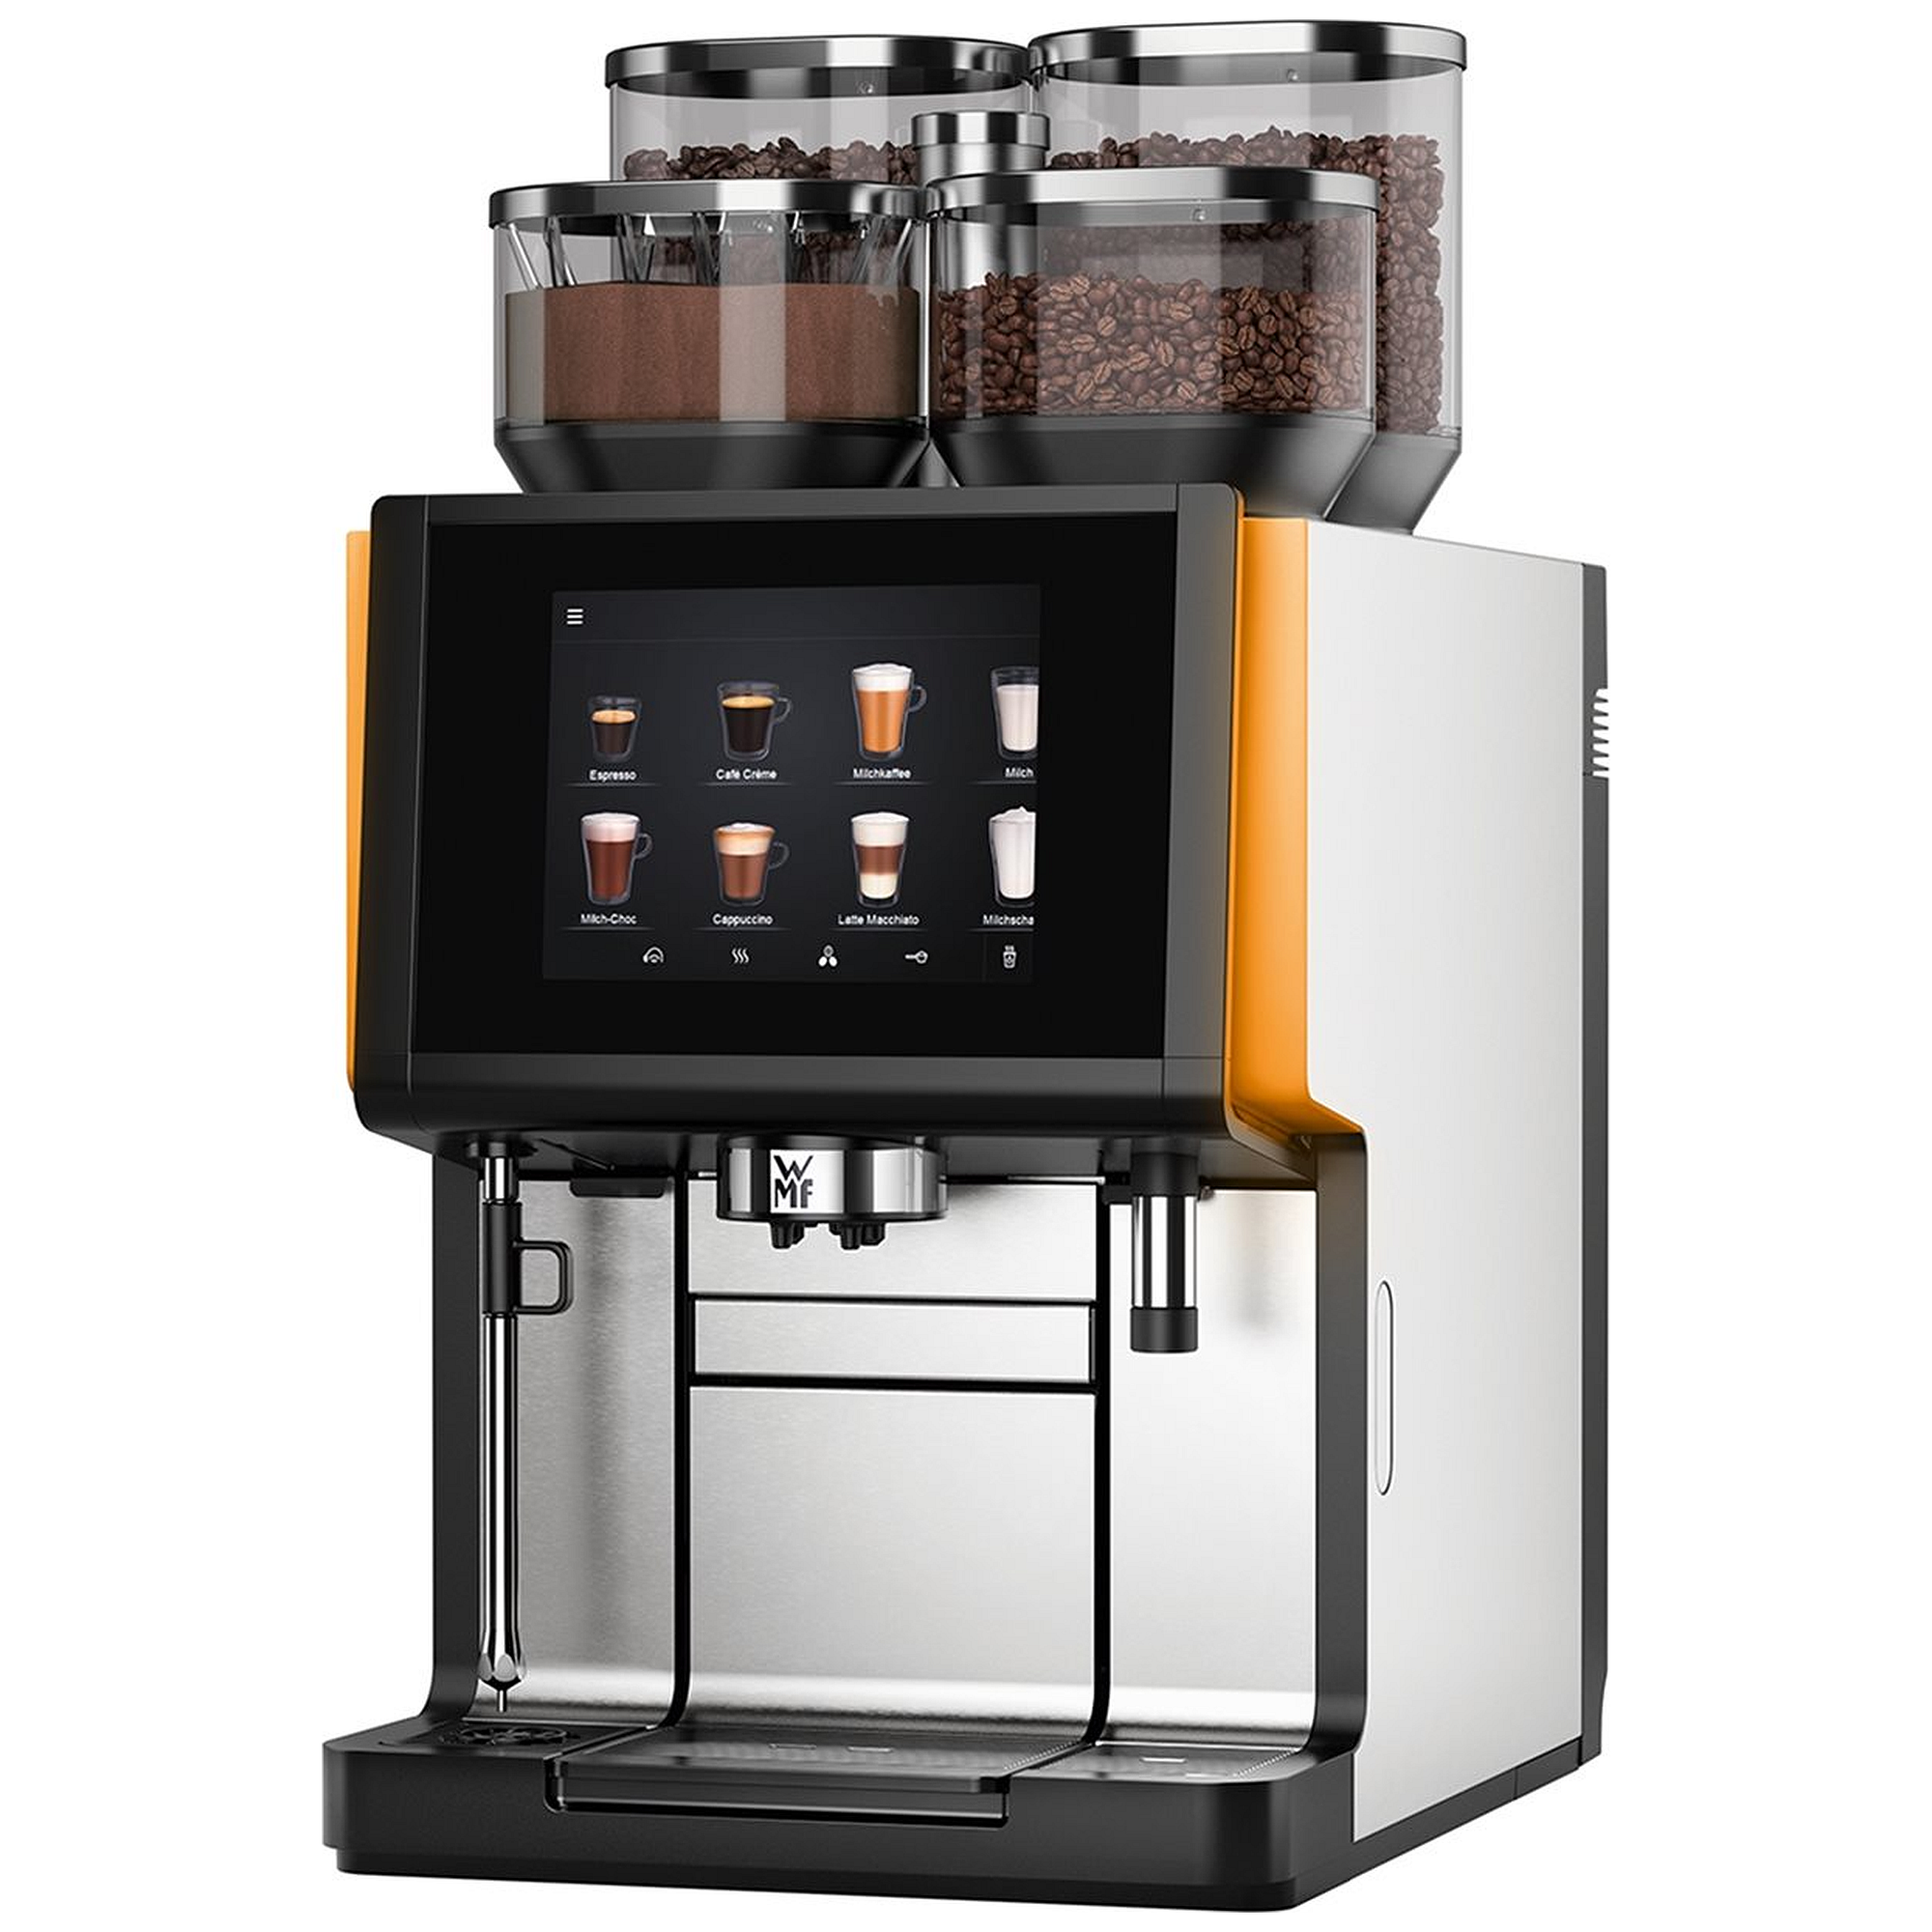 WMF 9000S+ Coffee Machine